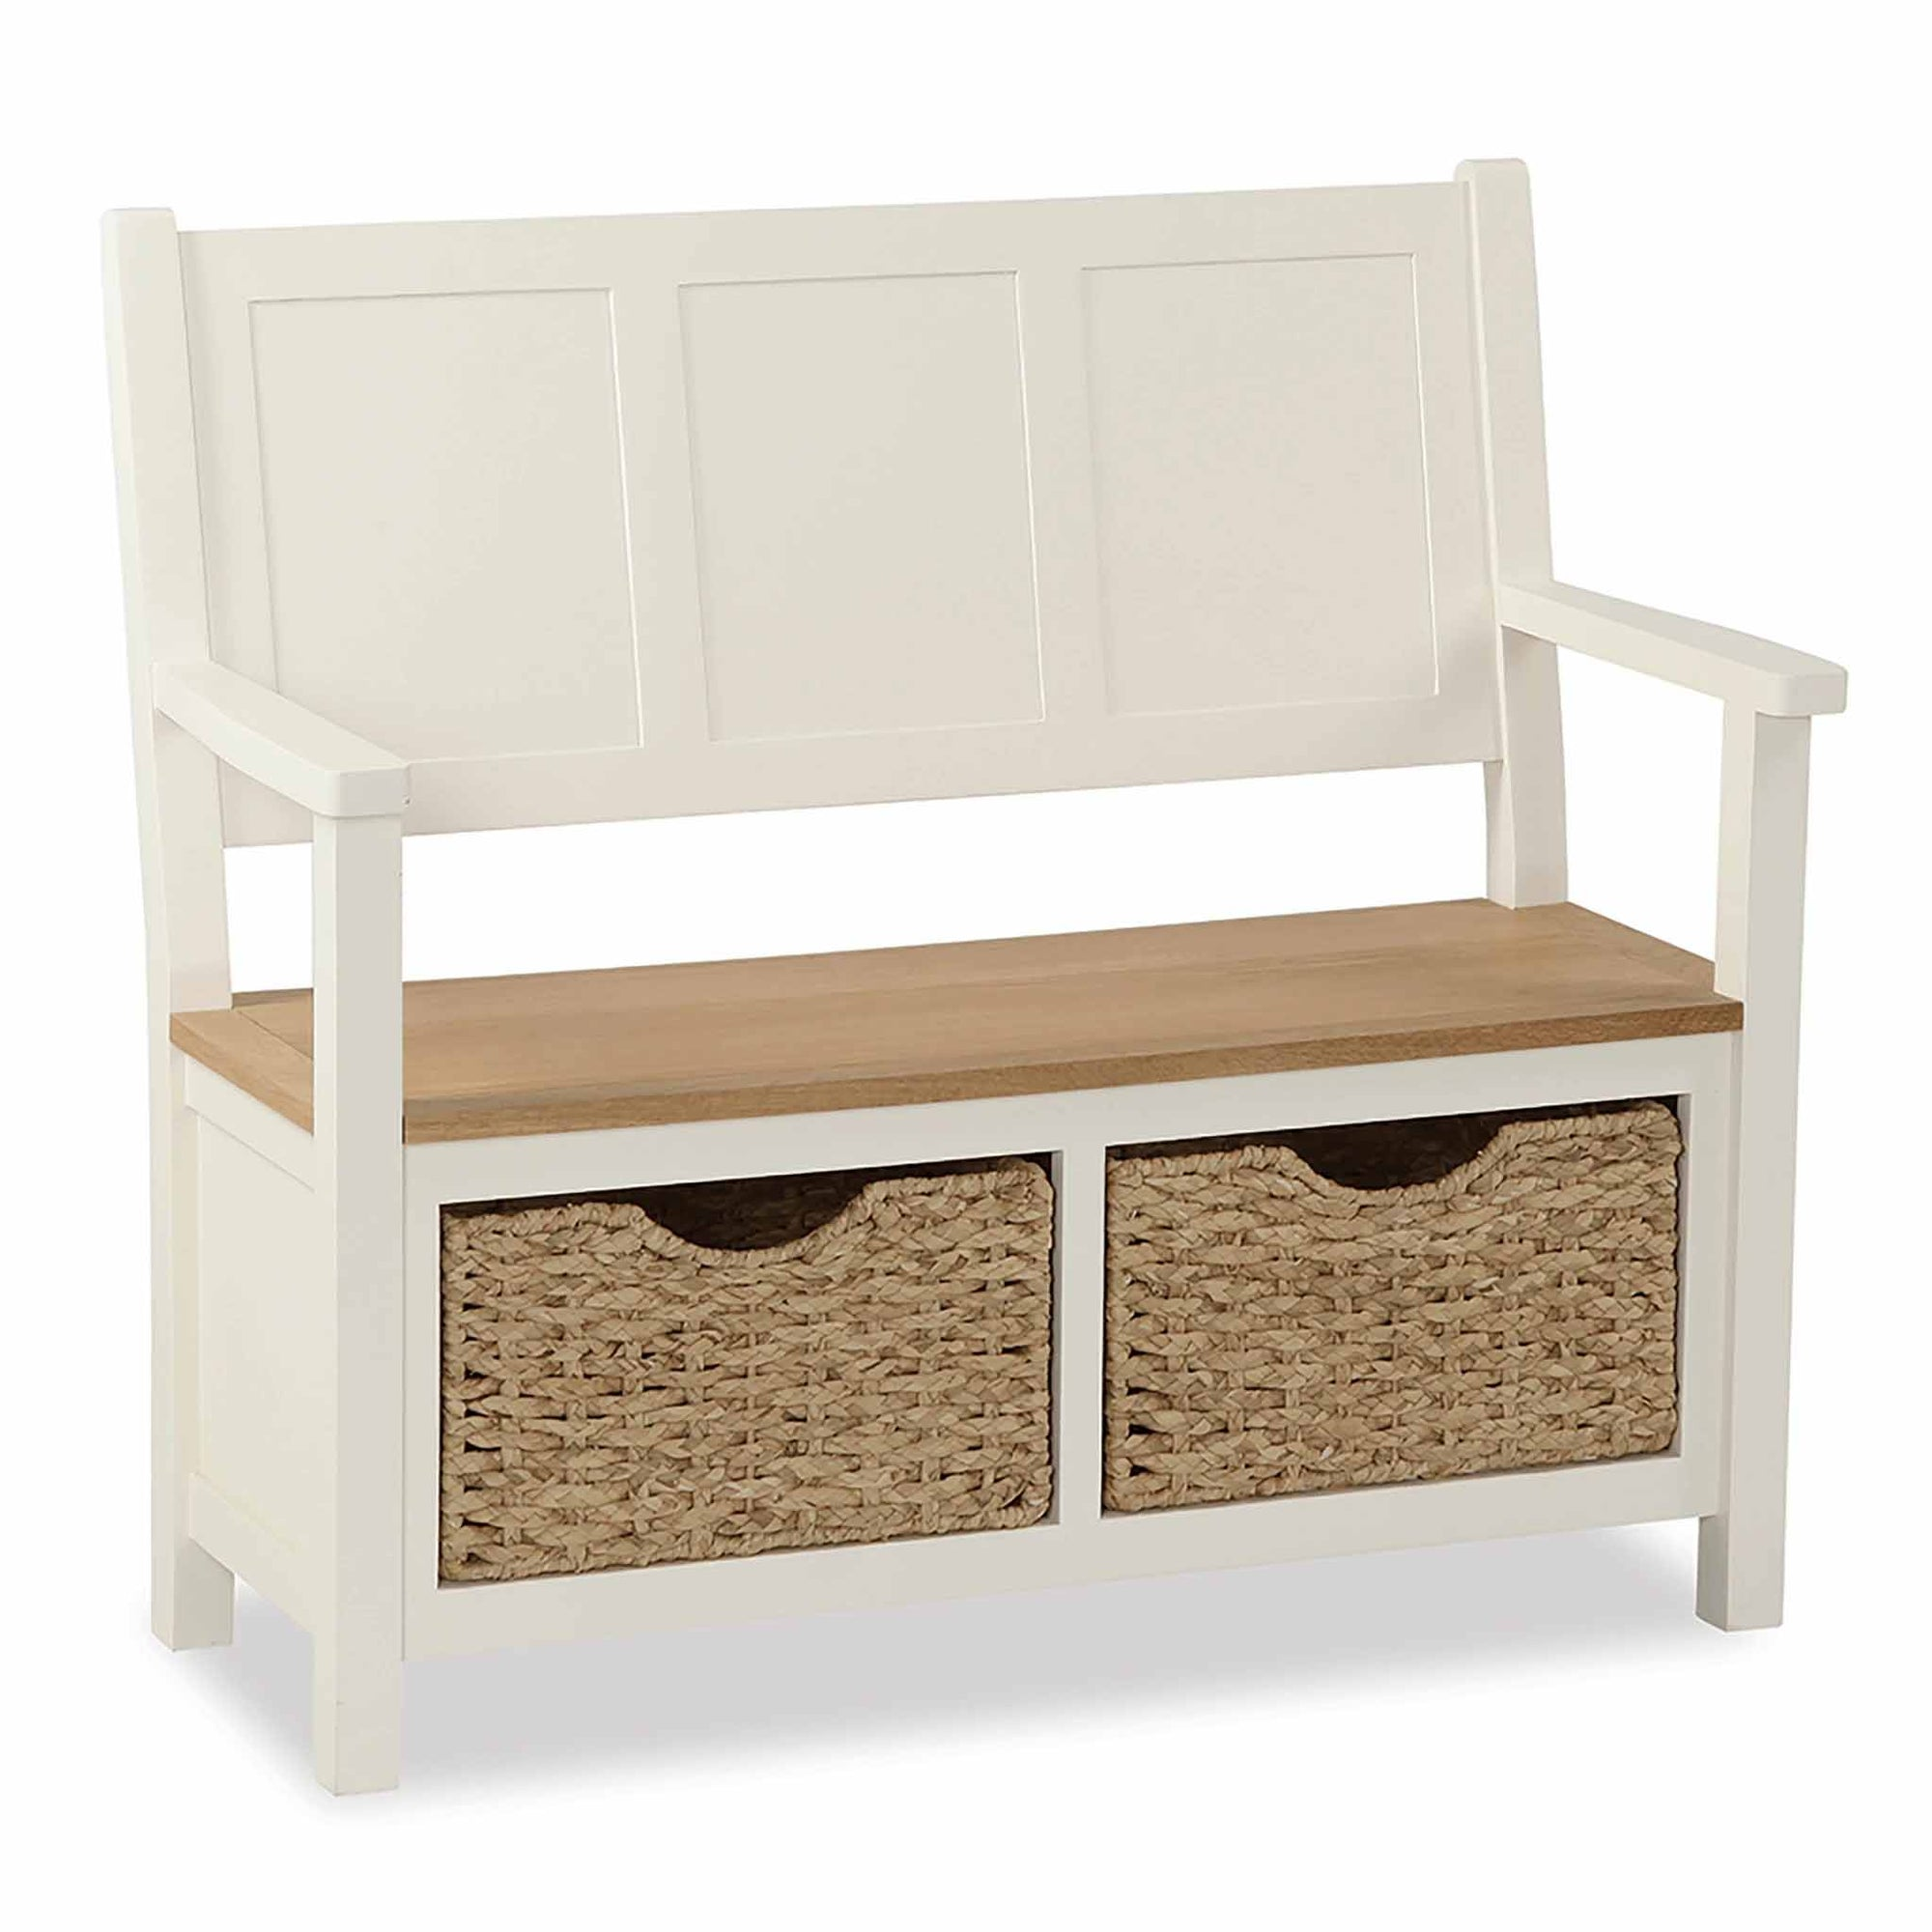 The Daymer Cream Wooden Hallway Storage Bench with Baskets from Roseland Furniture